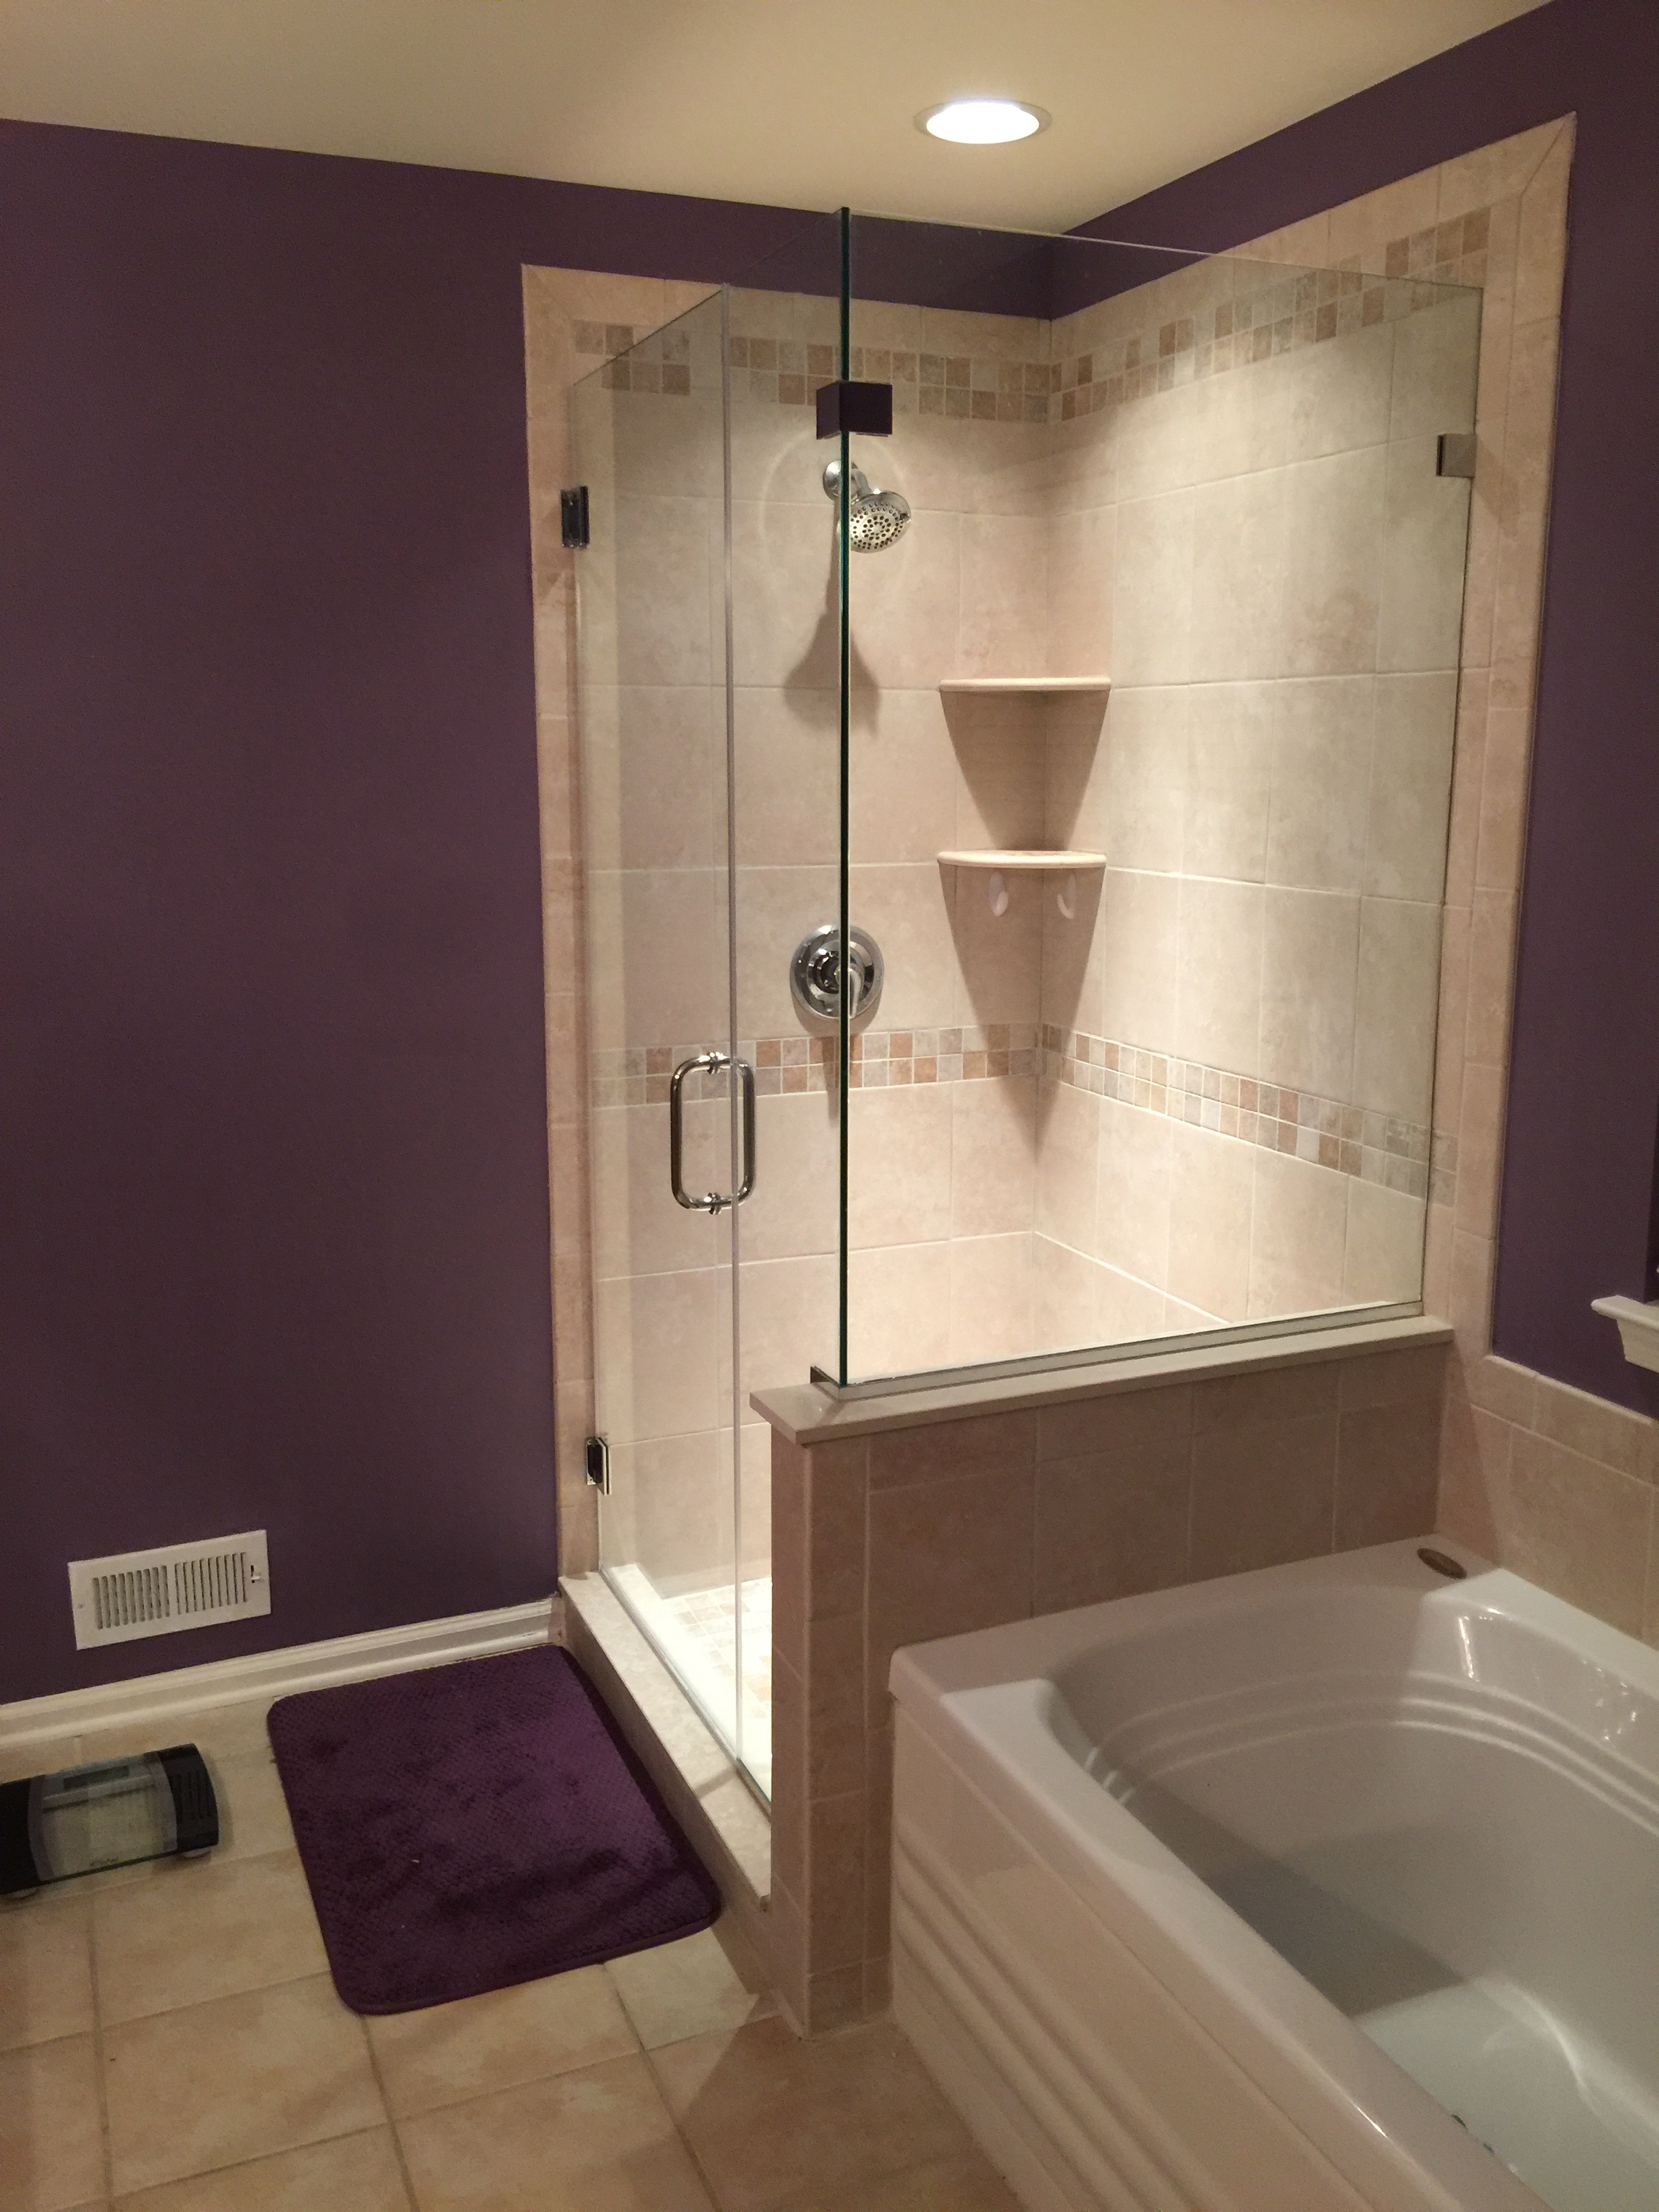 Bathroom Remodel In Mantua Located In South Jersey AMaster - Bathroom remodeling south jersey